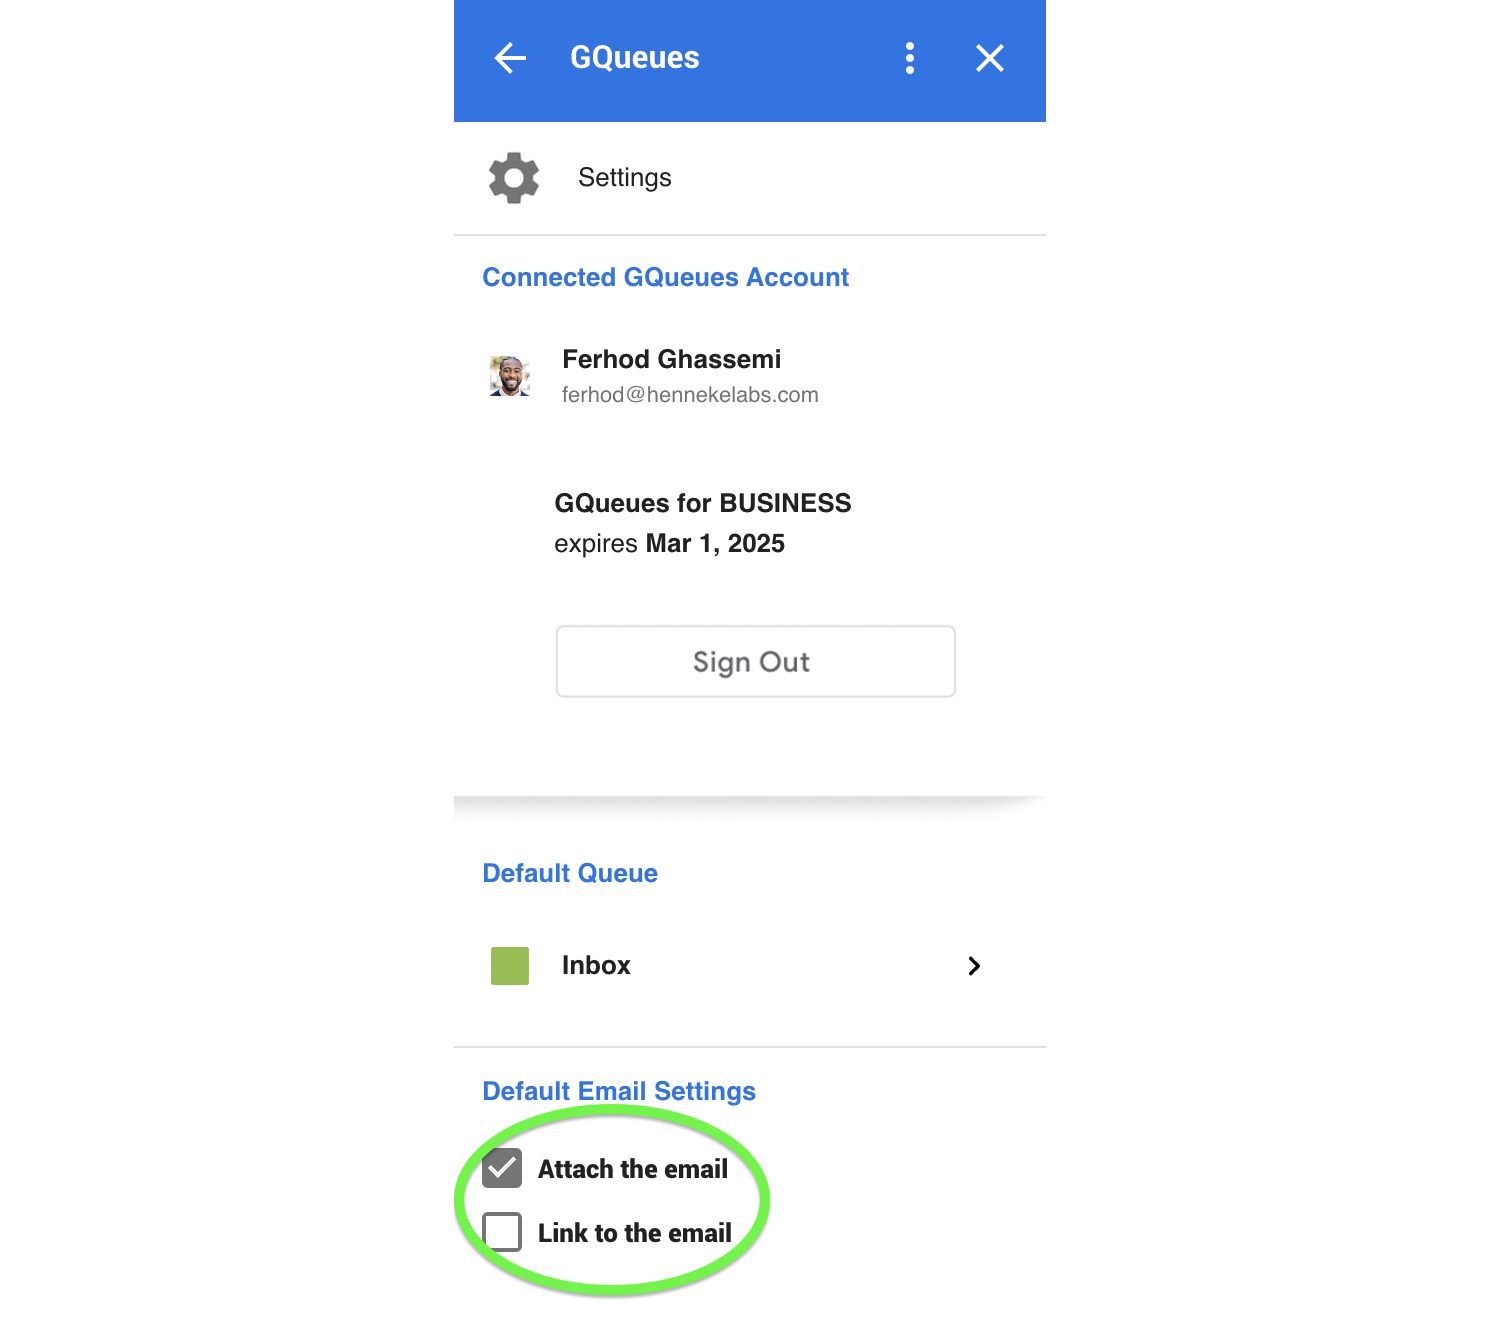 Choose if emails are automatically attached and/or linked to tasks in the Google Workspace Add-on by default